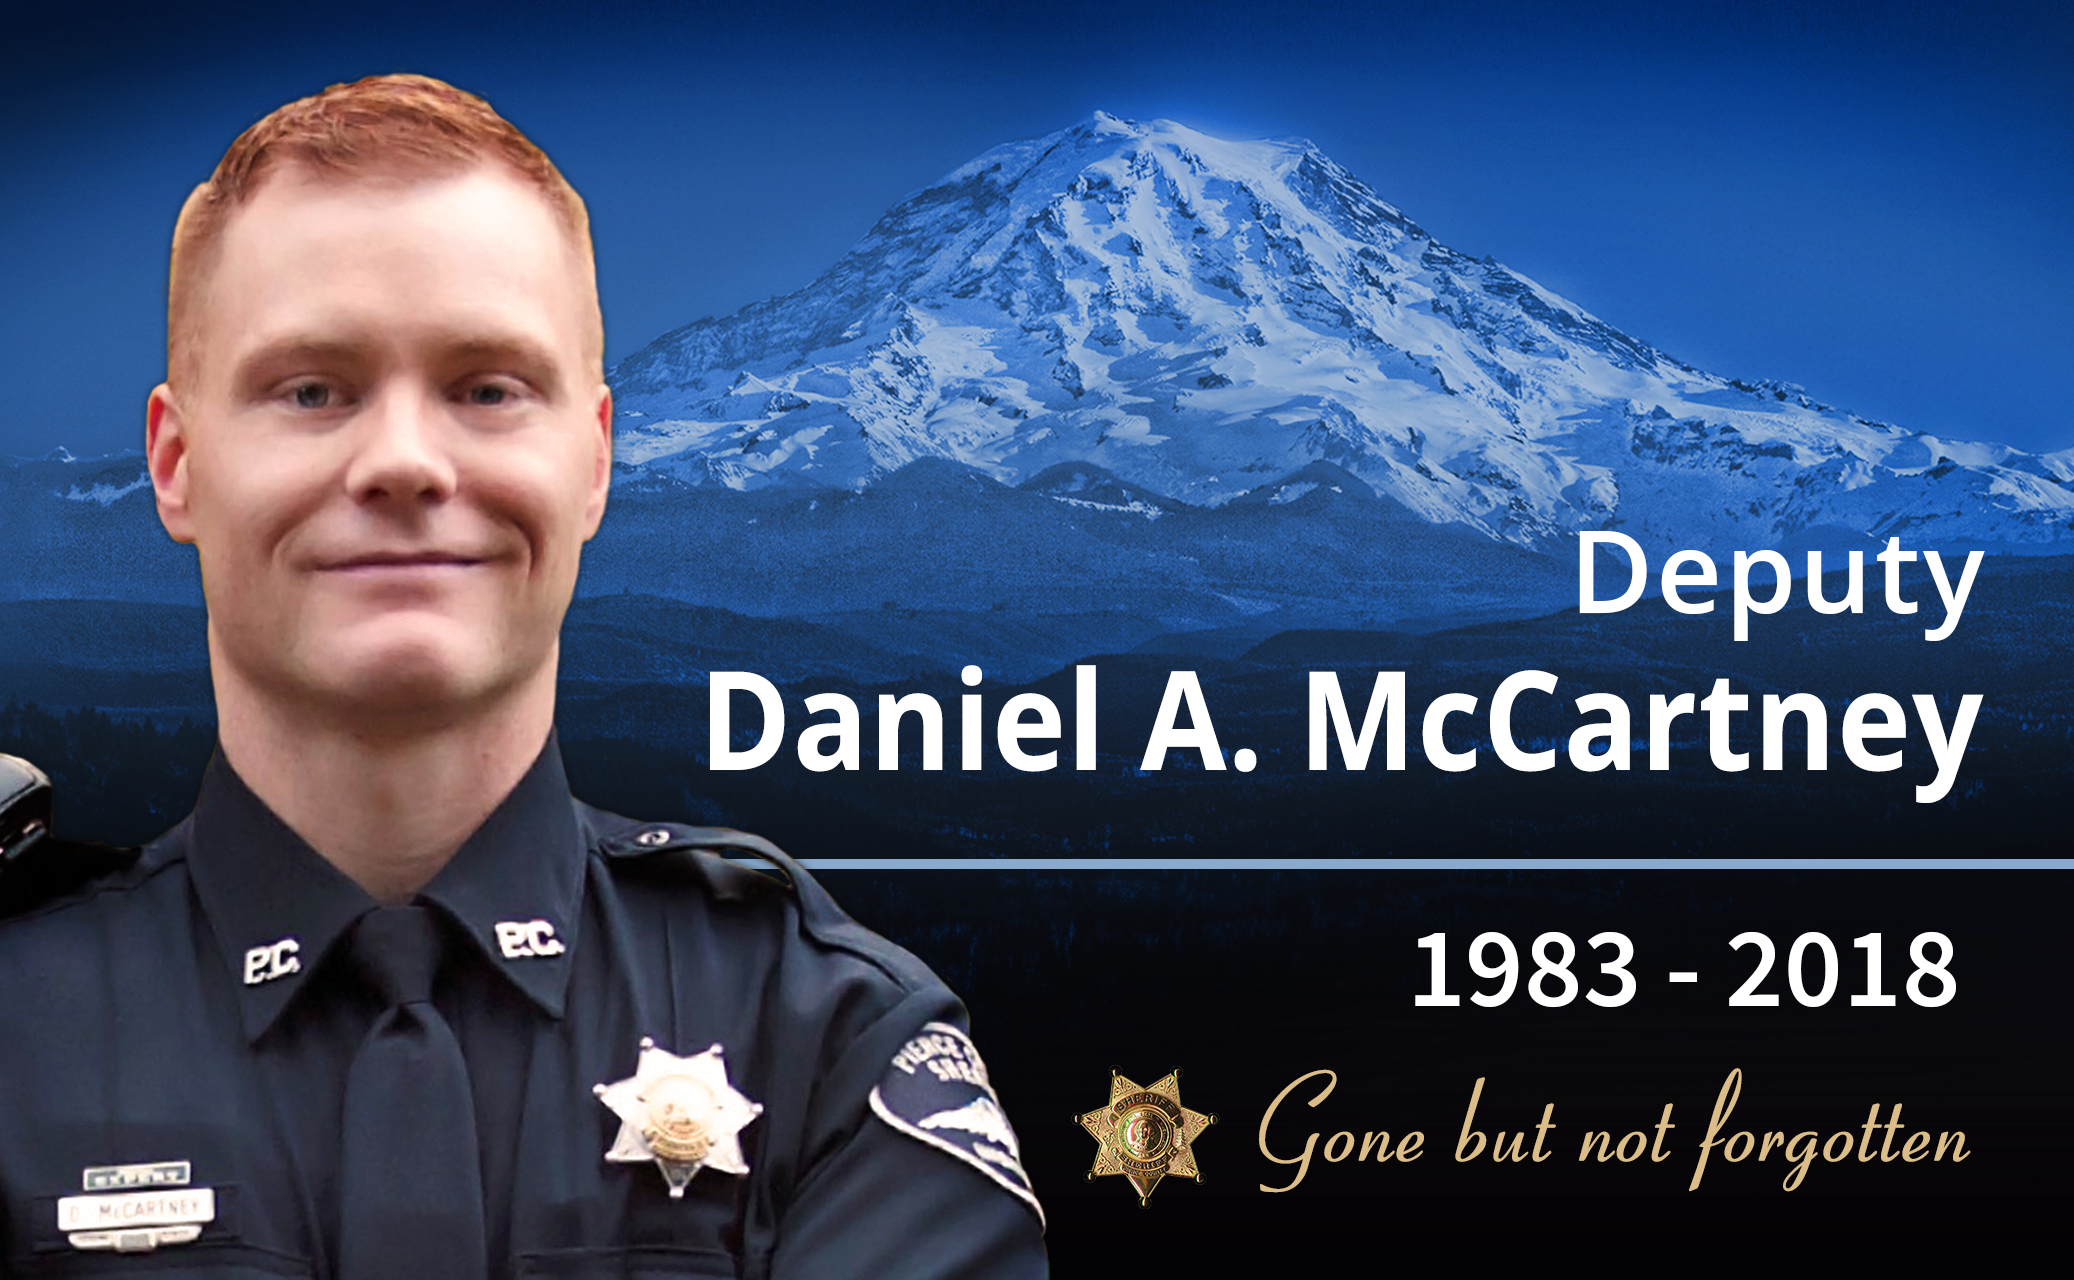 Deputy Sheriff Daniel Alexander McCartney | Pierce County Sheriff's Department, Washington